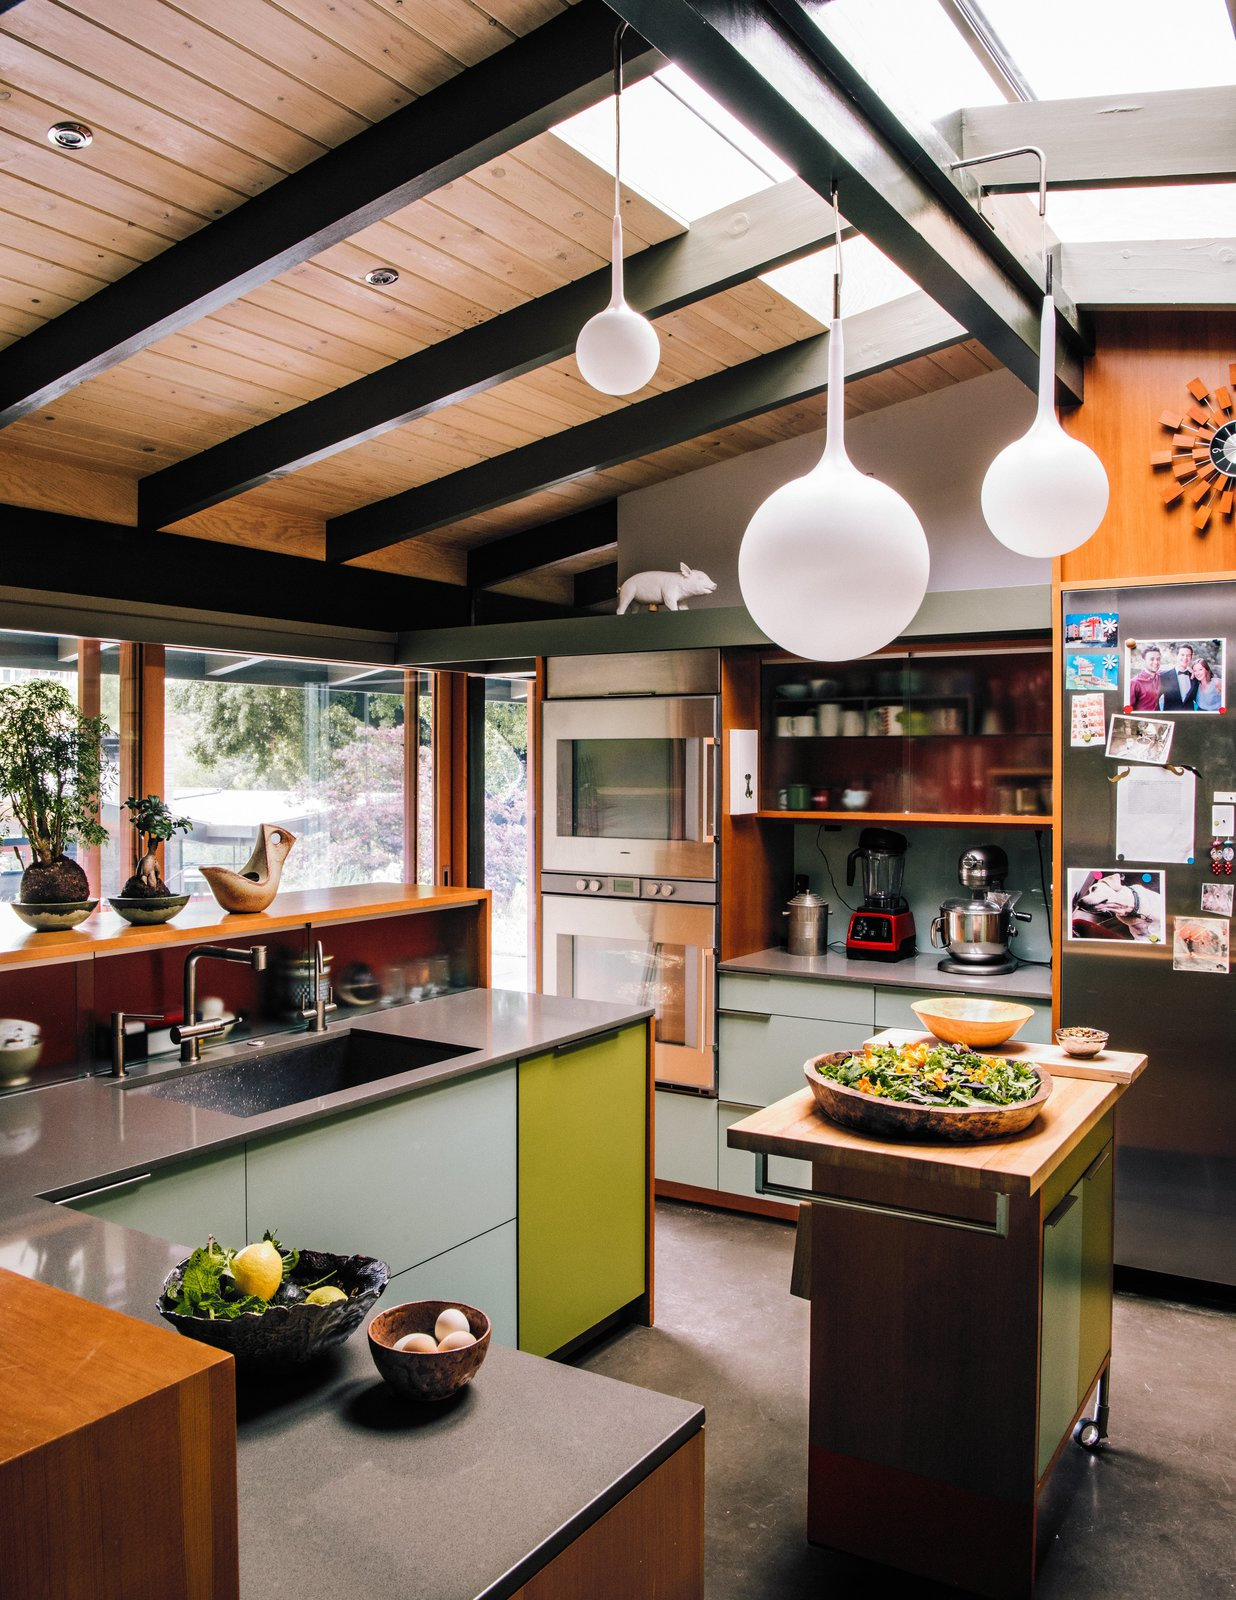 Kitchen, Undermount Sink, Wall Oven, Cooktops, Refrigerator, Wood Counter, Colorful Cabinet, Concrete Floor, Ceiling Lighting, and Pendant Lighting  Photo 2 of 14 in Creative Revival of a Modernist Gem